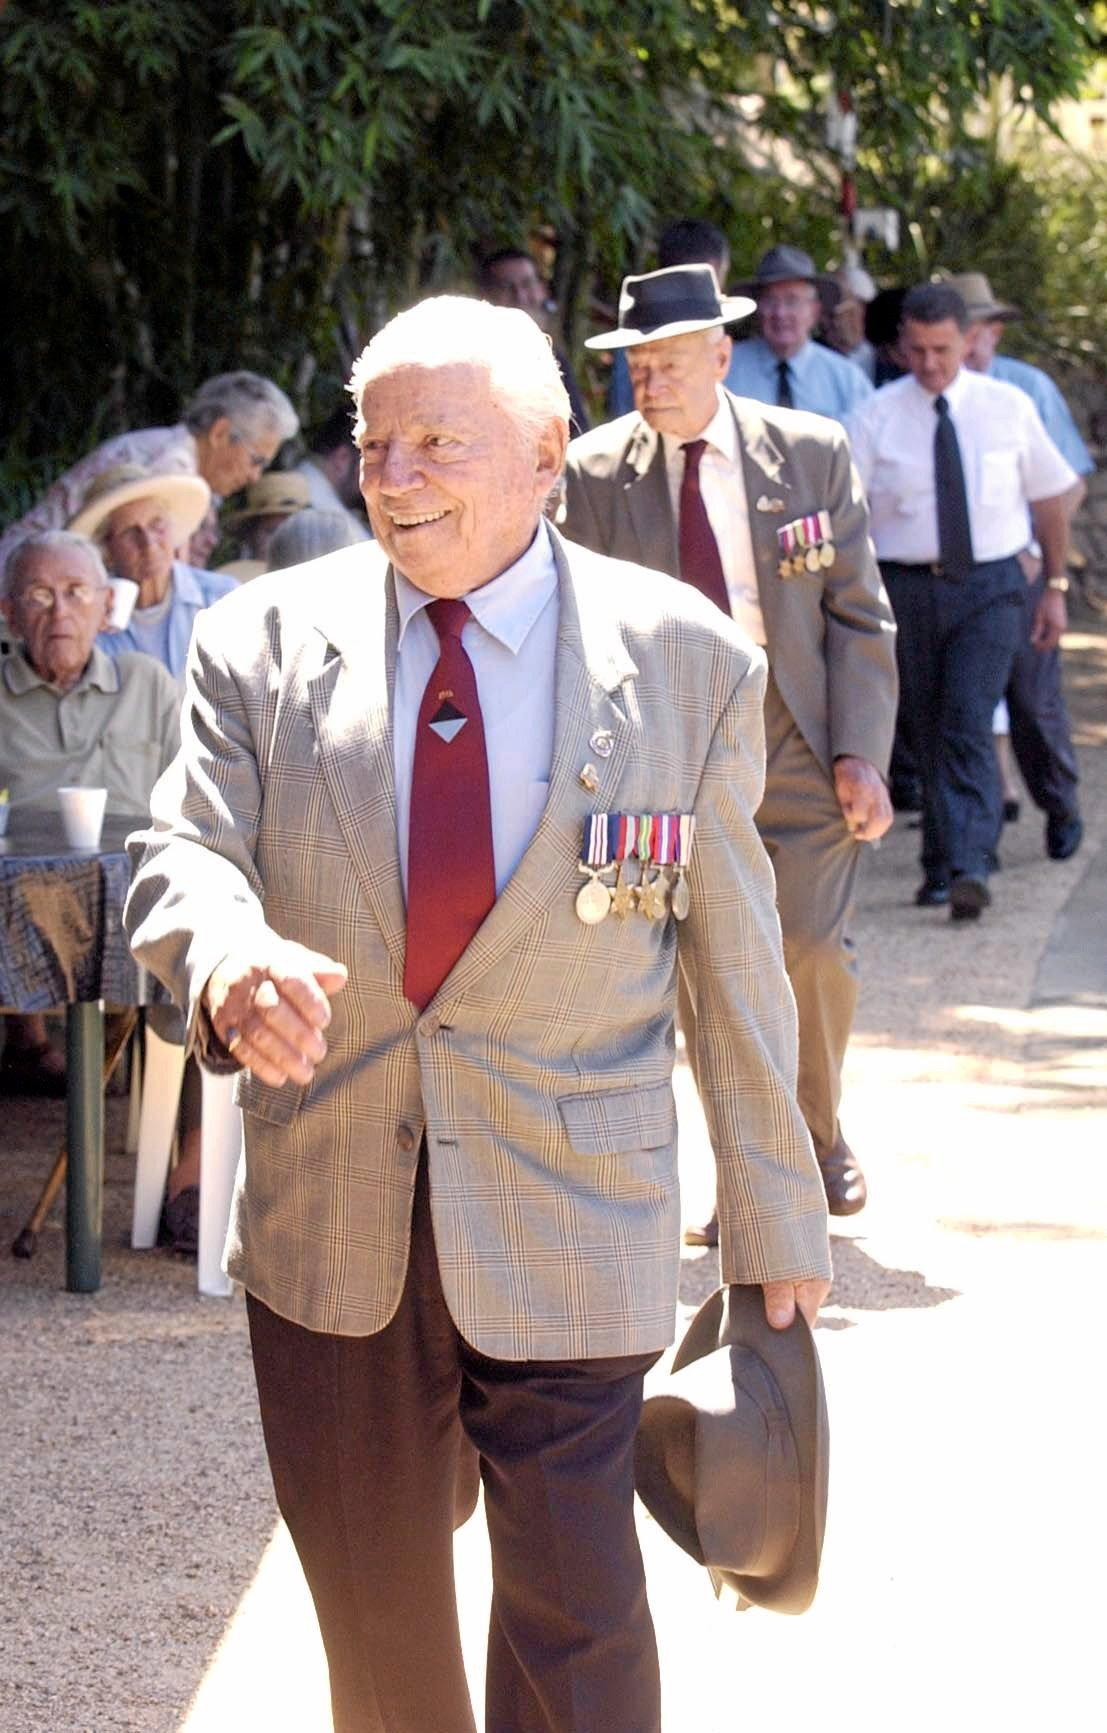 Anniversary of 25th Battalion heading off to war, Errol Jorgensen (dec) took part in the official ceremony. The Chronicle Archives. Published March 2006